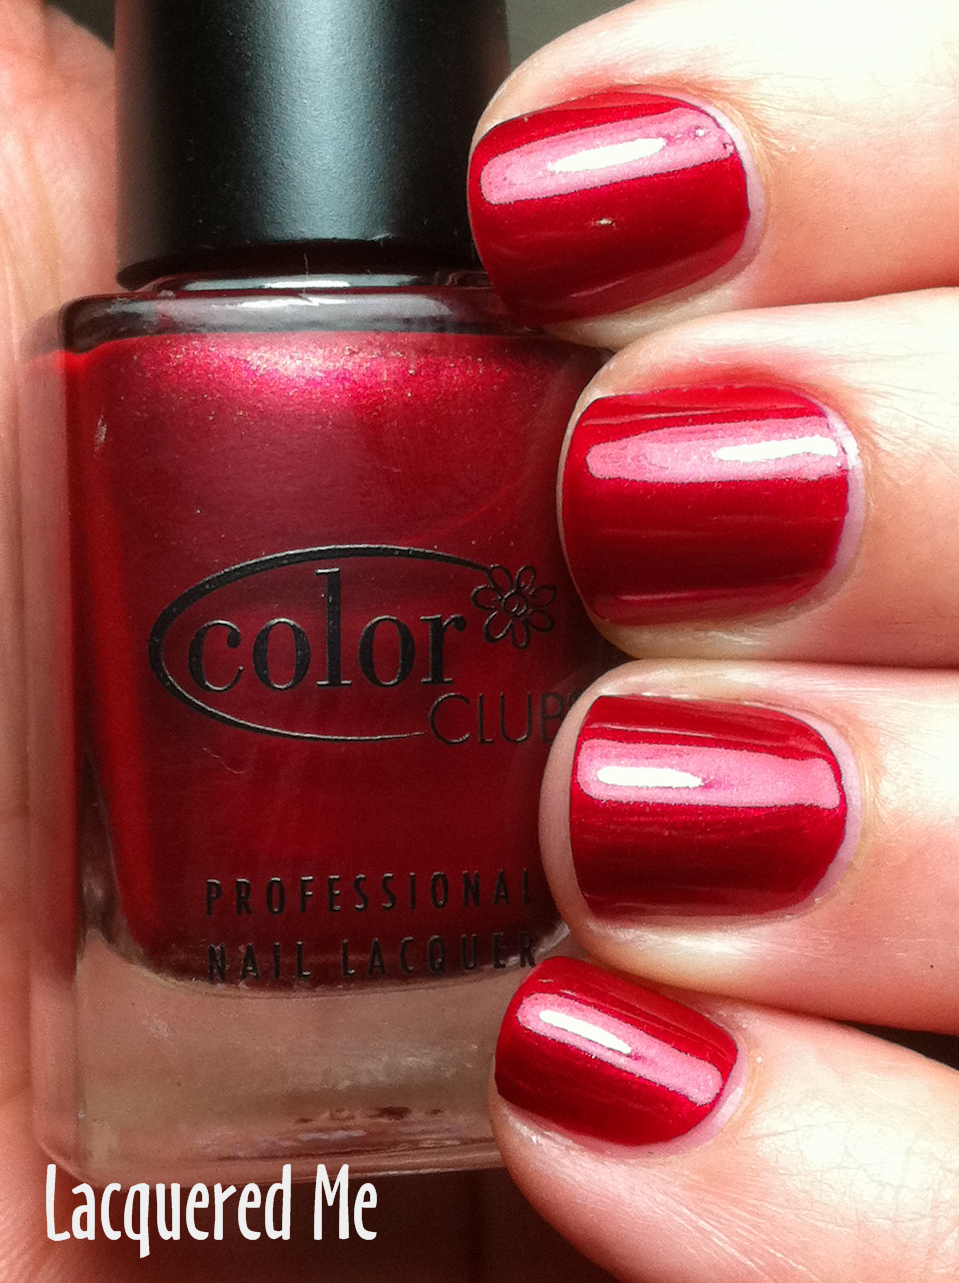 Lacquered Me: December 2011